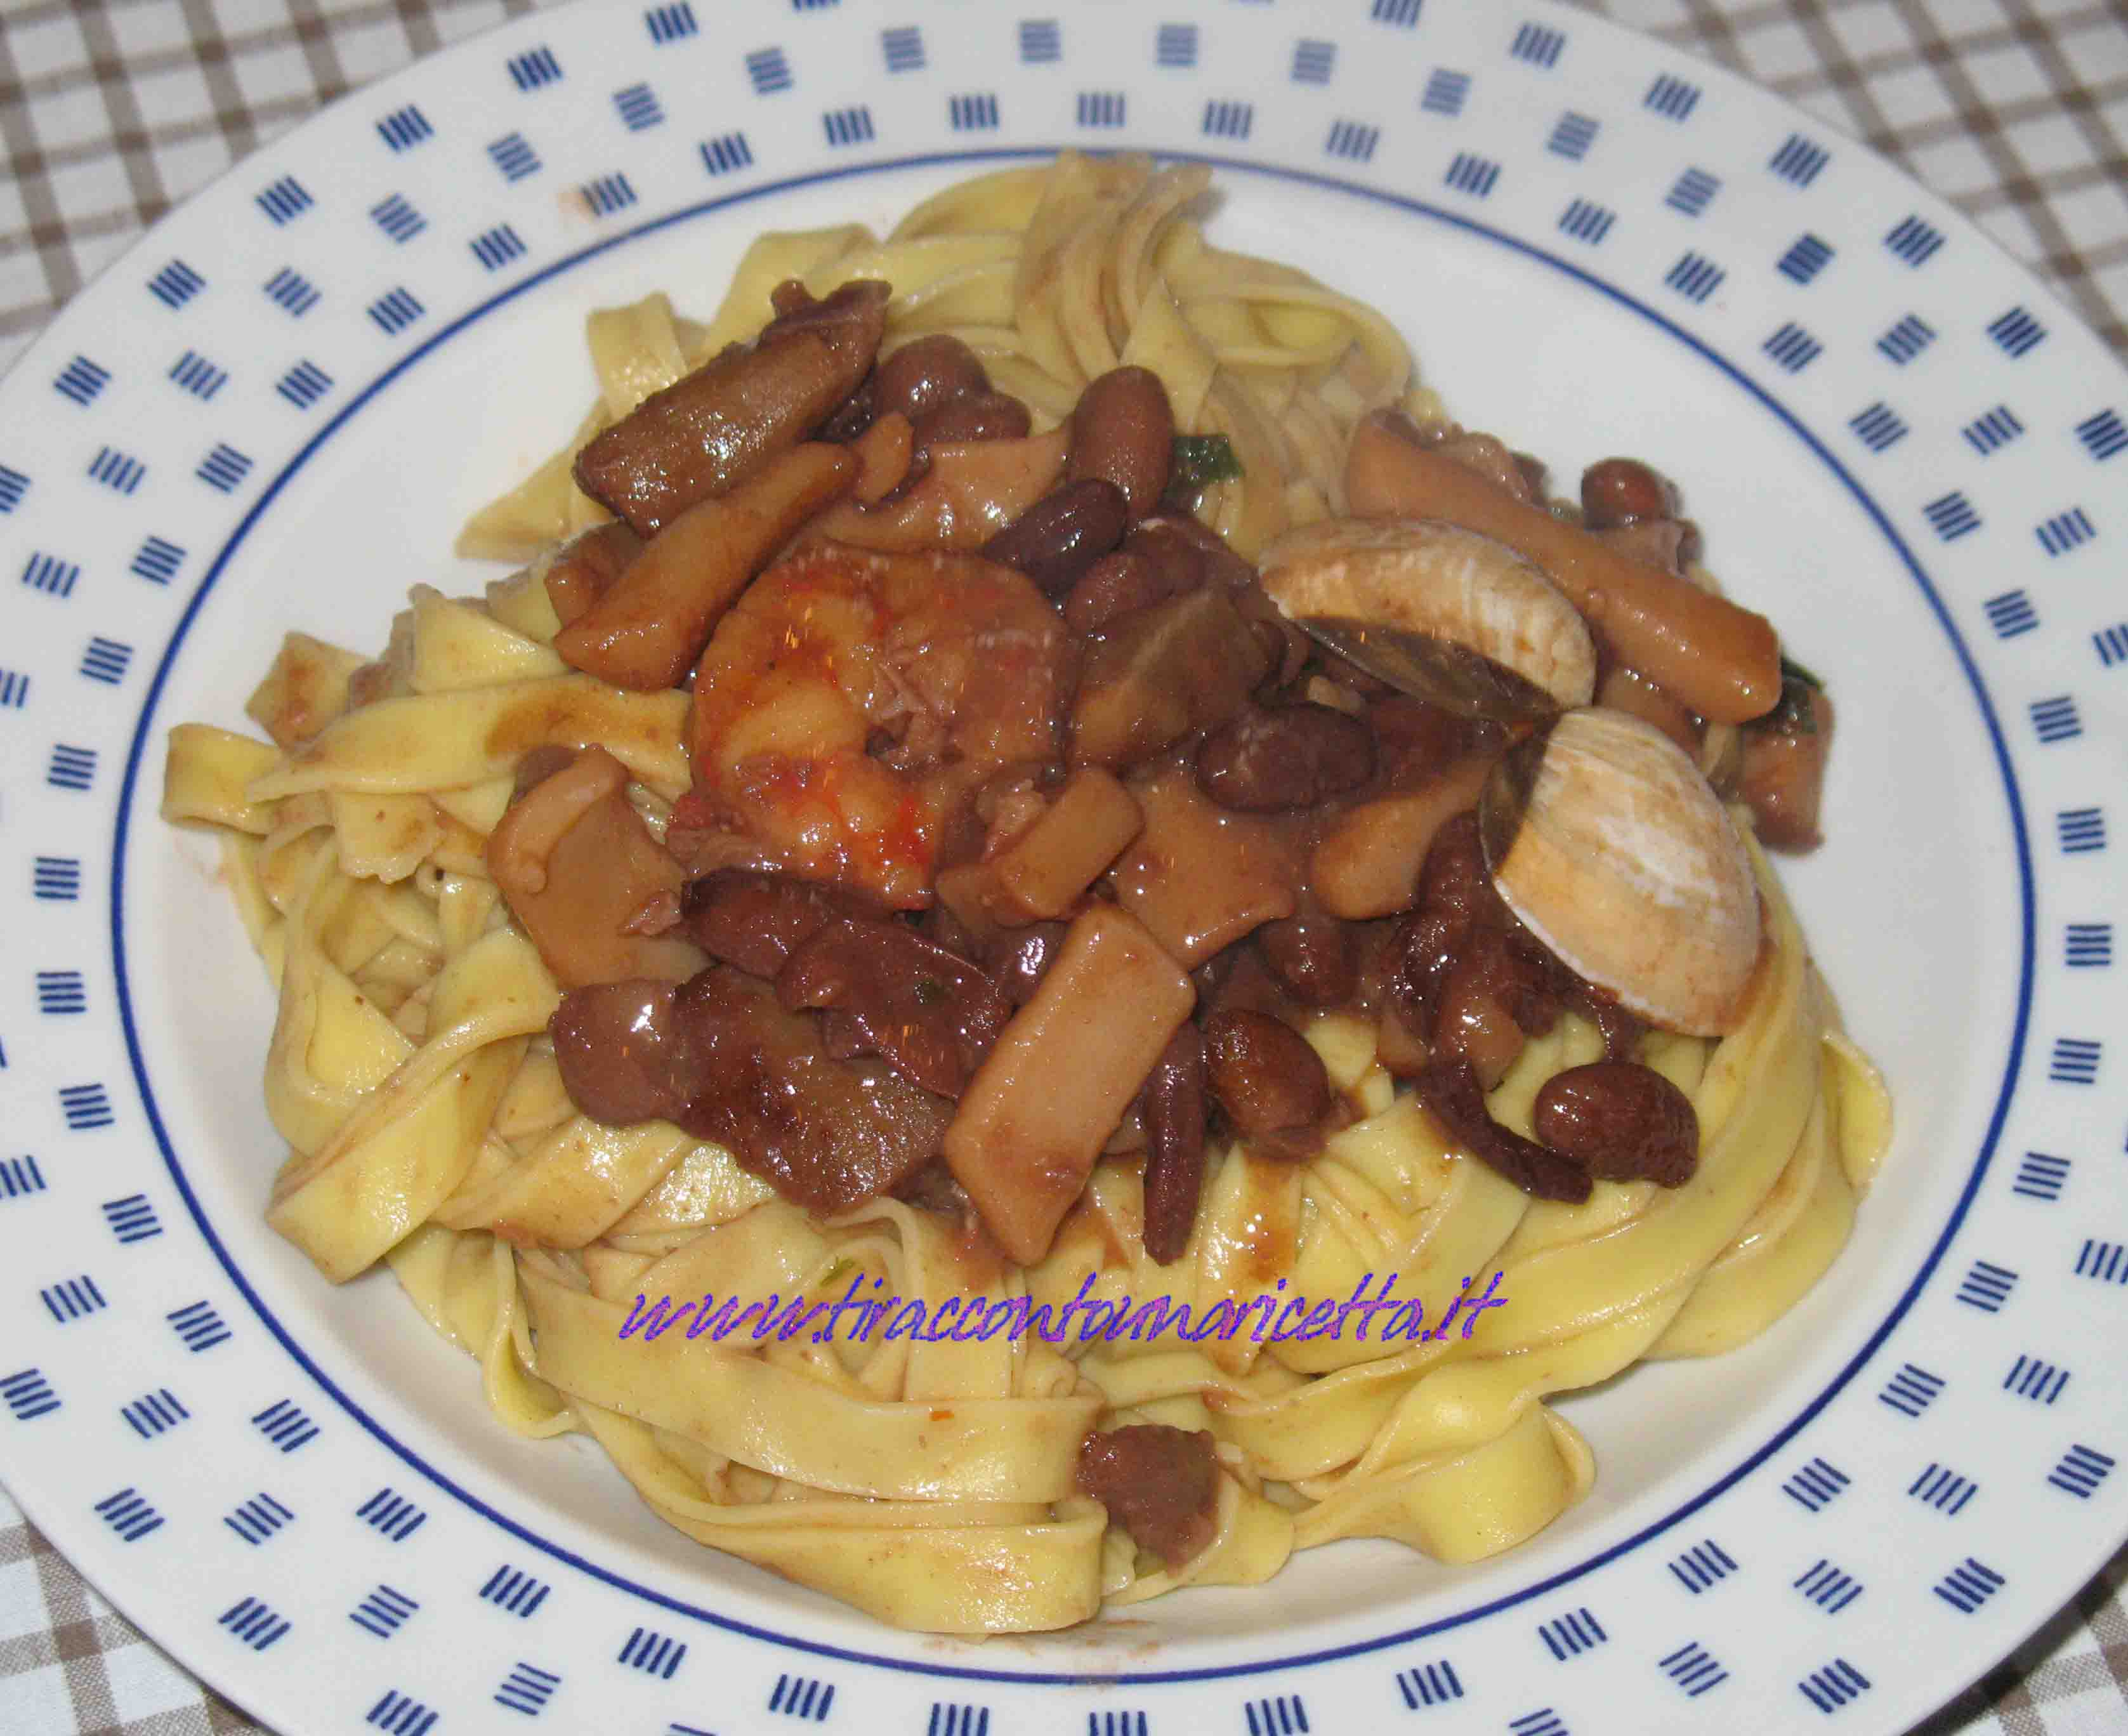 Fettuccine with seafood with mushrooms and beans